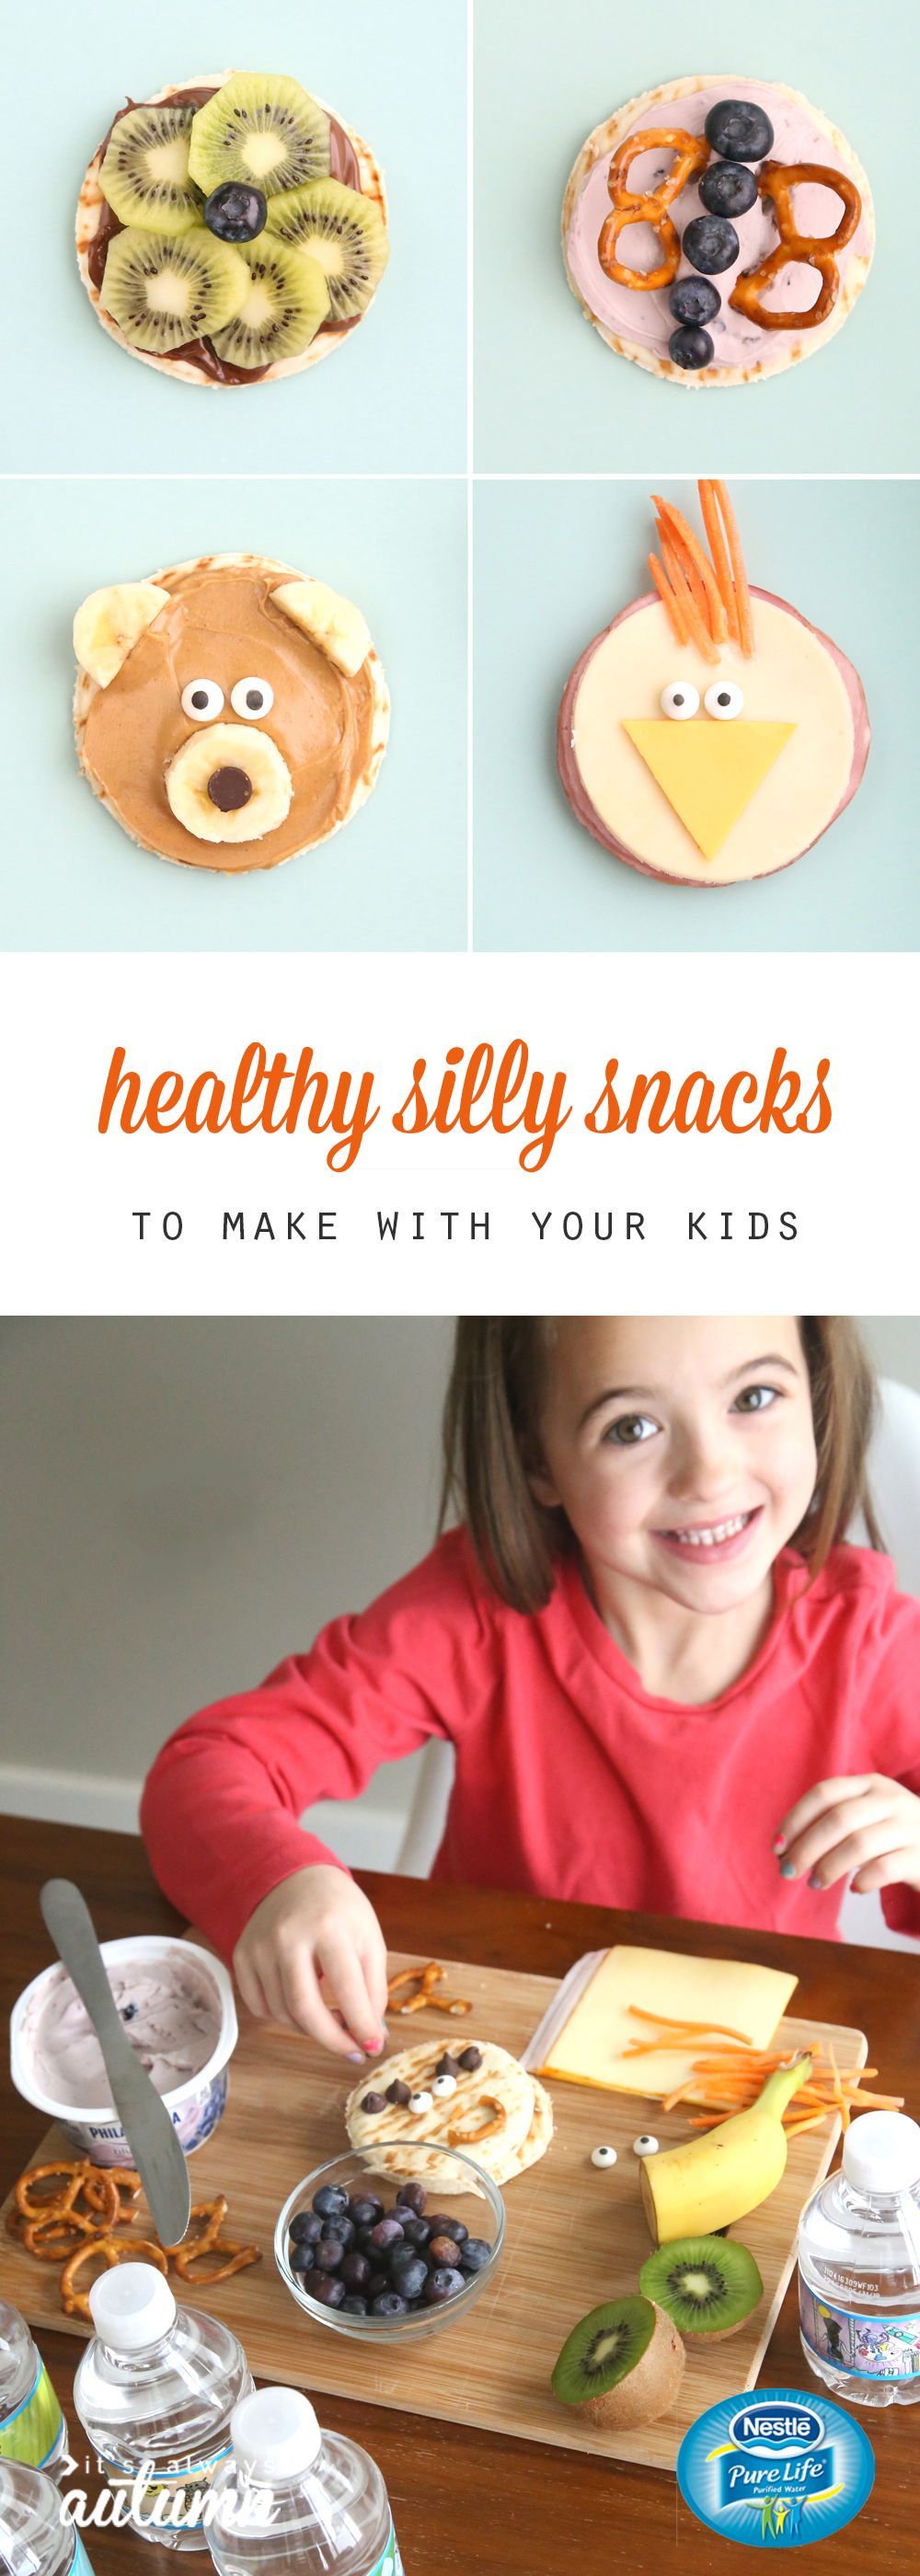 these adorable silly snacks for kids are healthy and easy to make! Ham & cheese chick, peanut butter banana bear, blueberry pretzel butterfly, and kiwi nutella flower. #NestleShareaSmile #ad